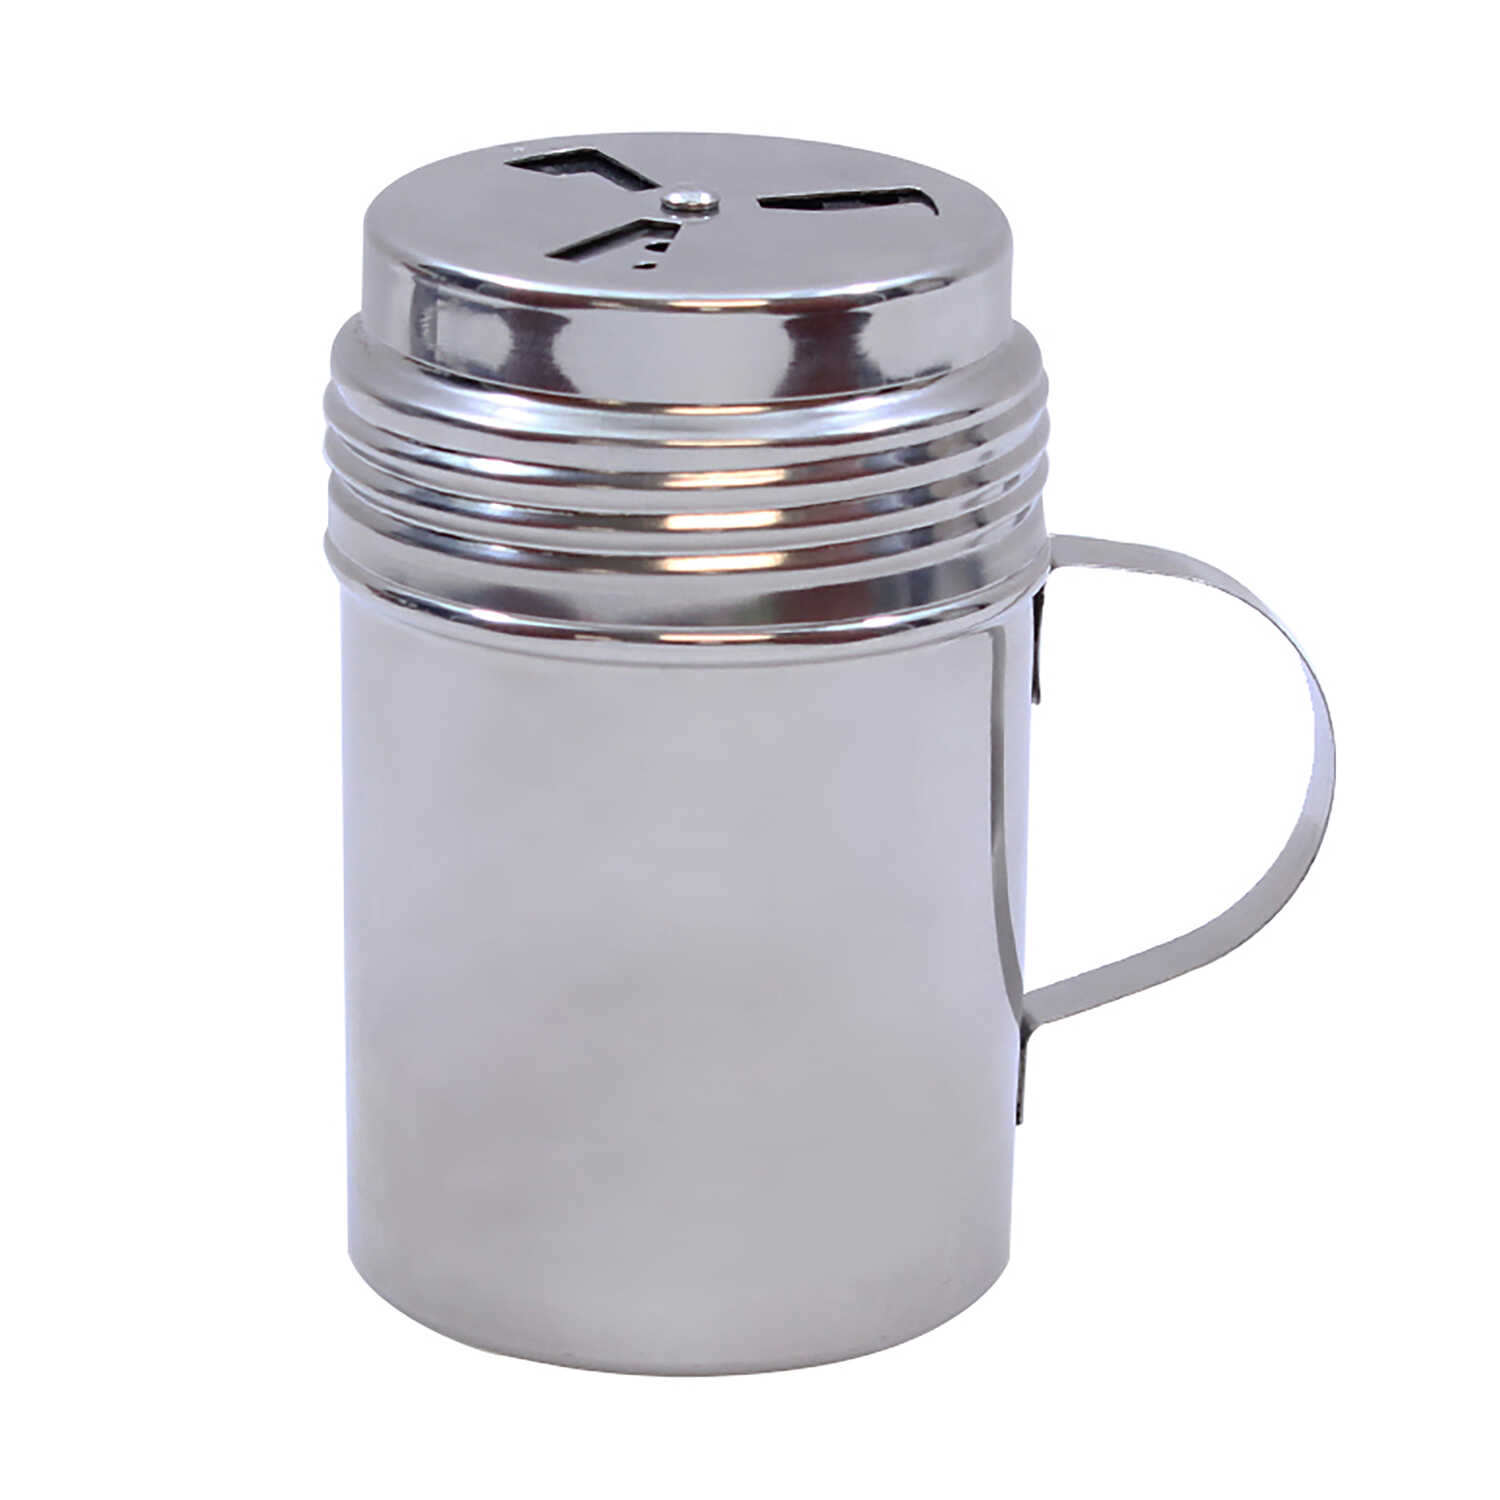 Tablecraft  BBQ  Silver  Stainless Steel  Dry Rub Shaker w/Handle